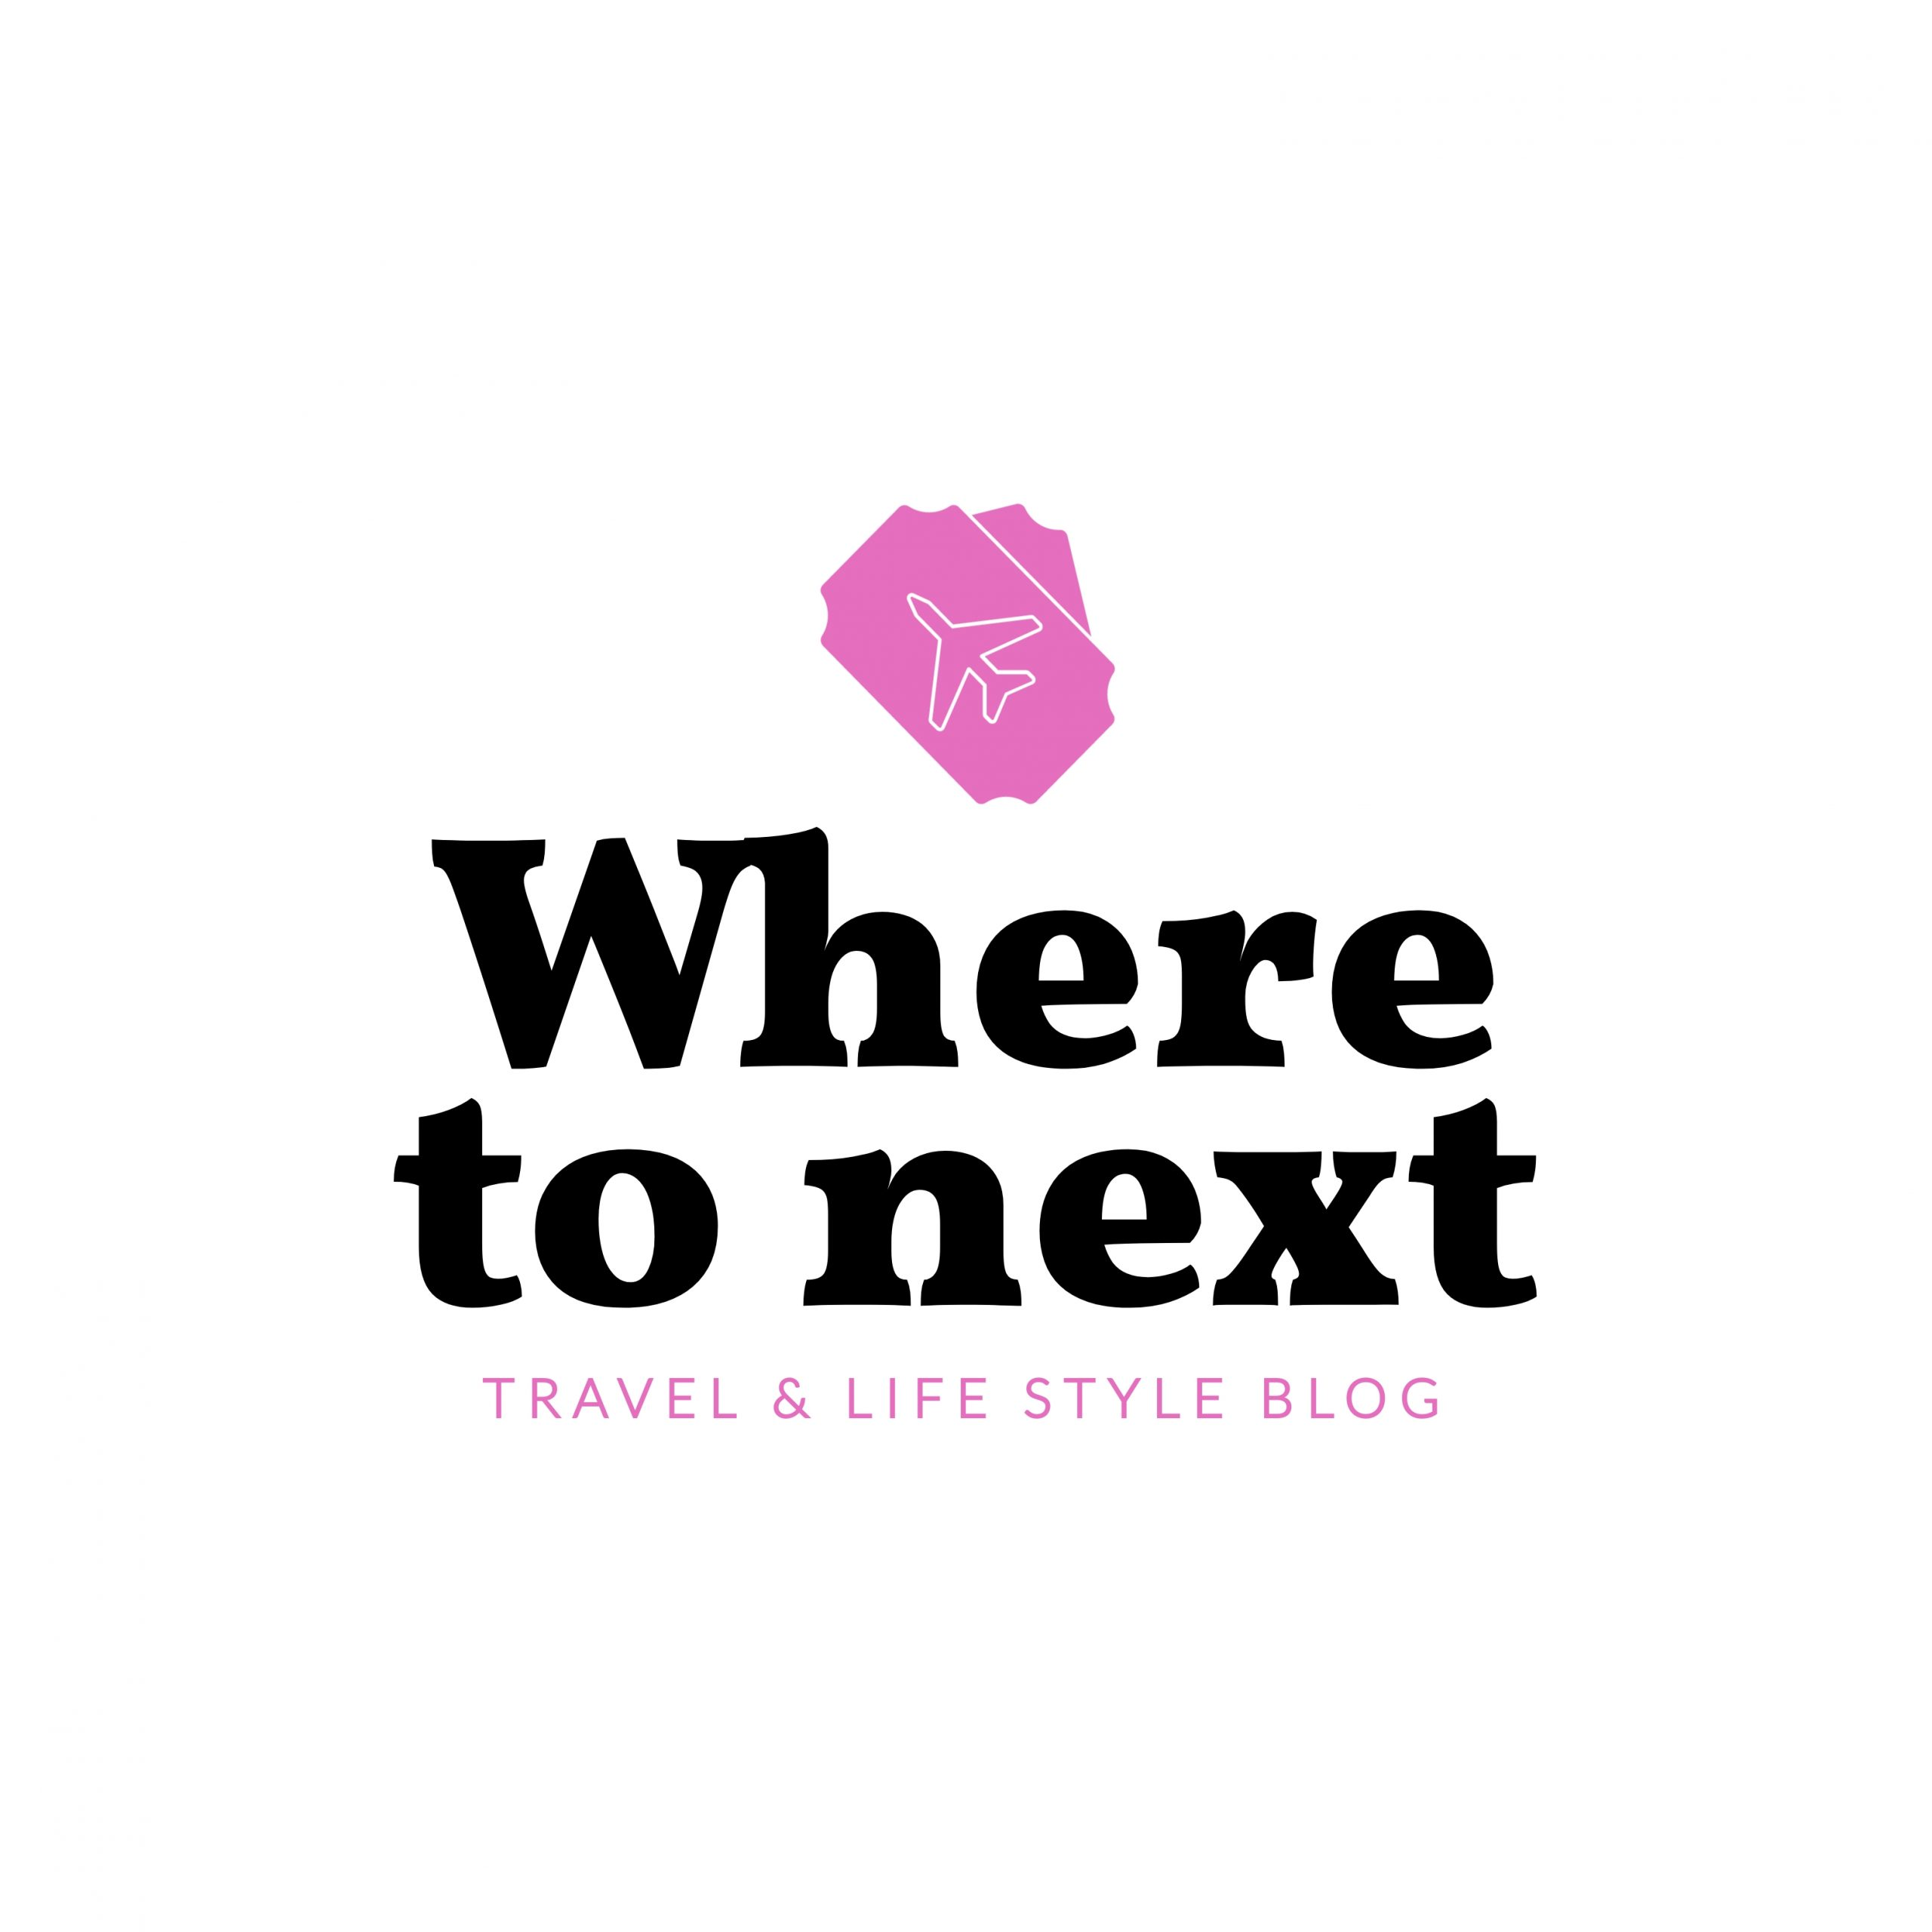 A travel blog logo template available to customize in Visme.